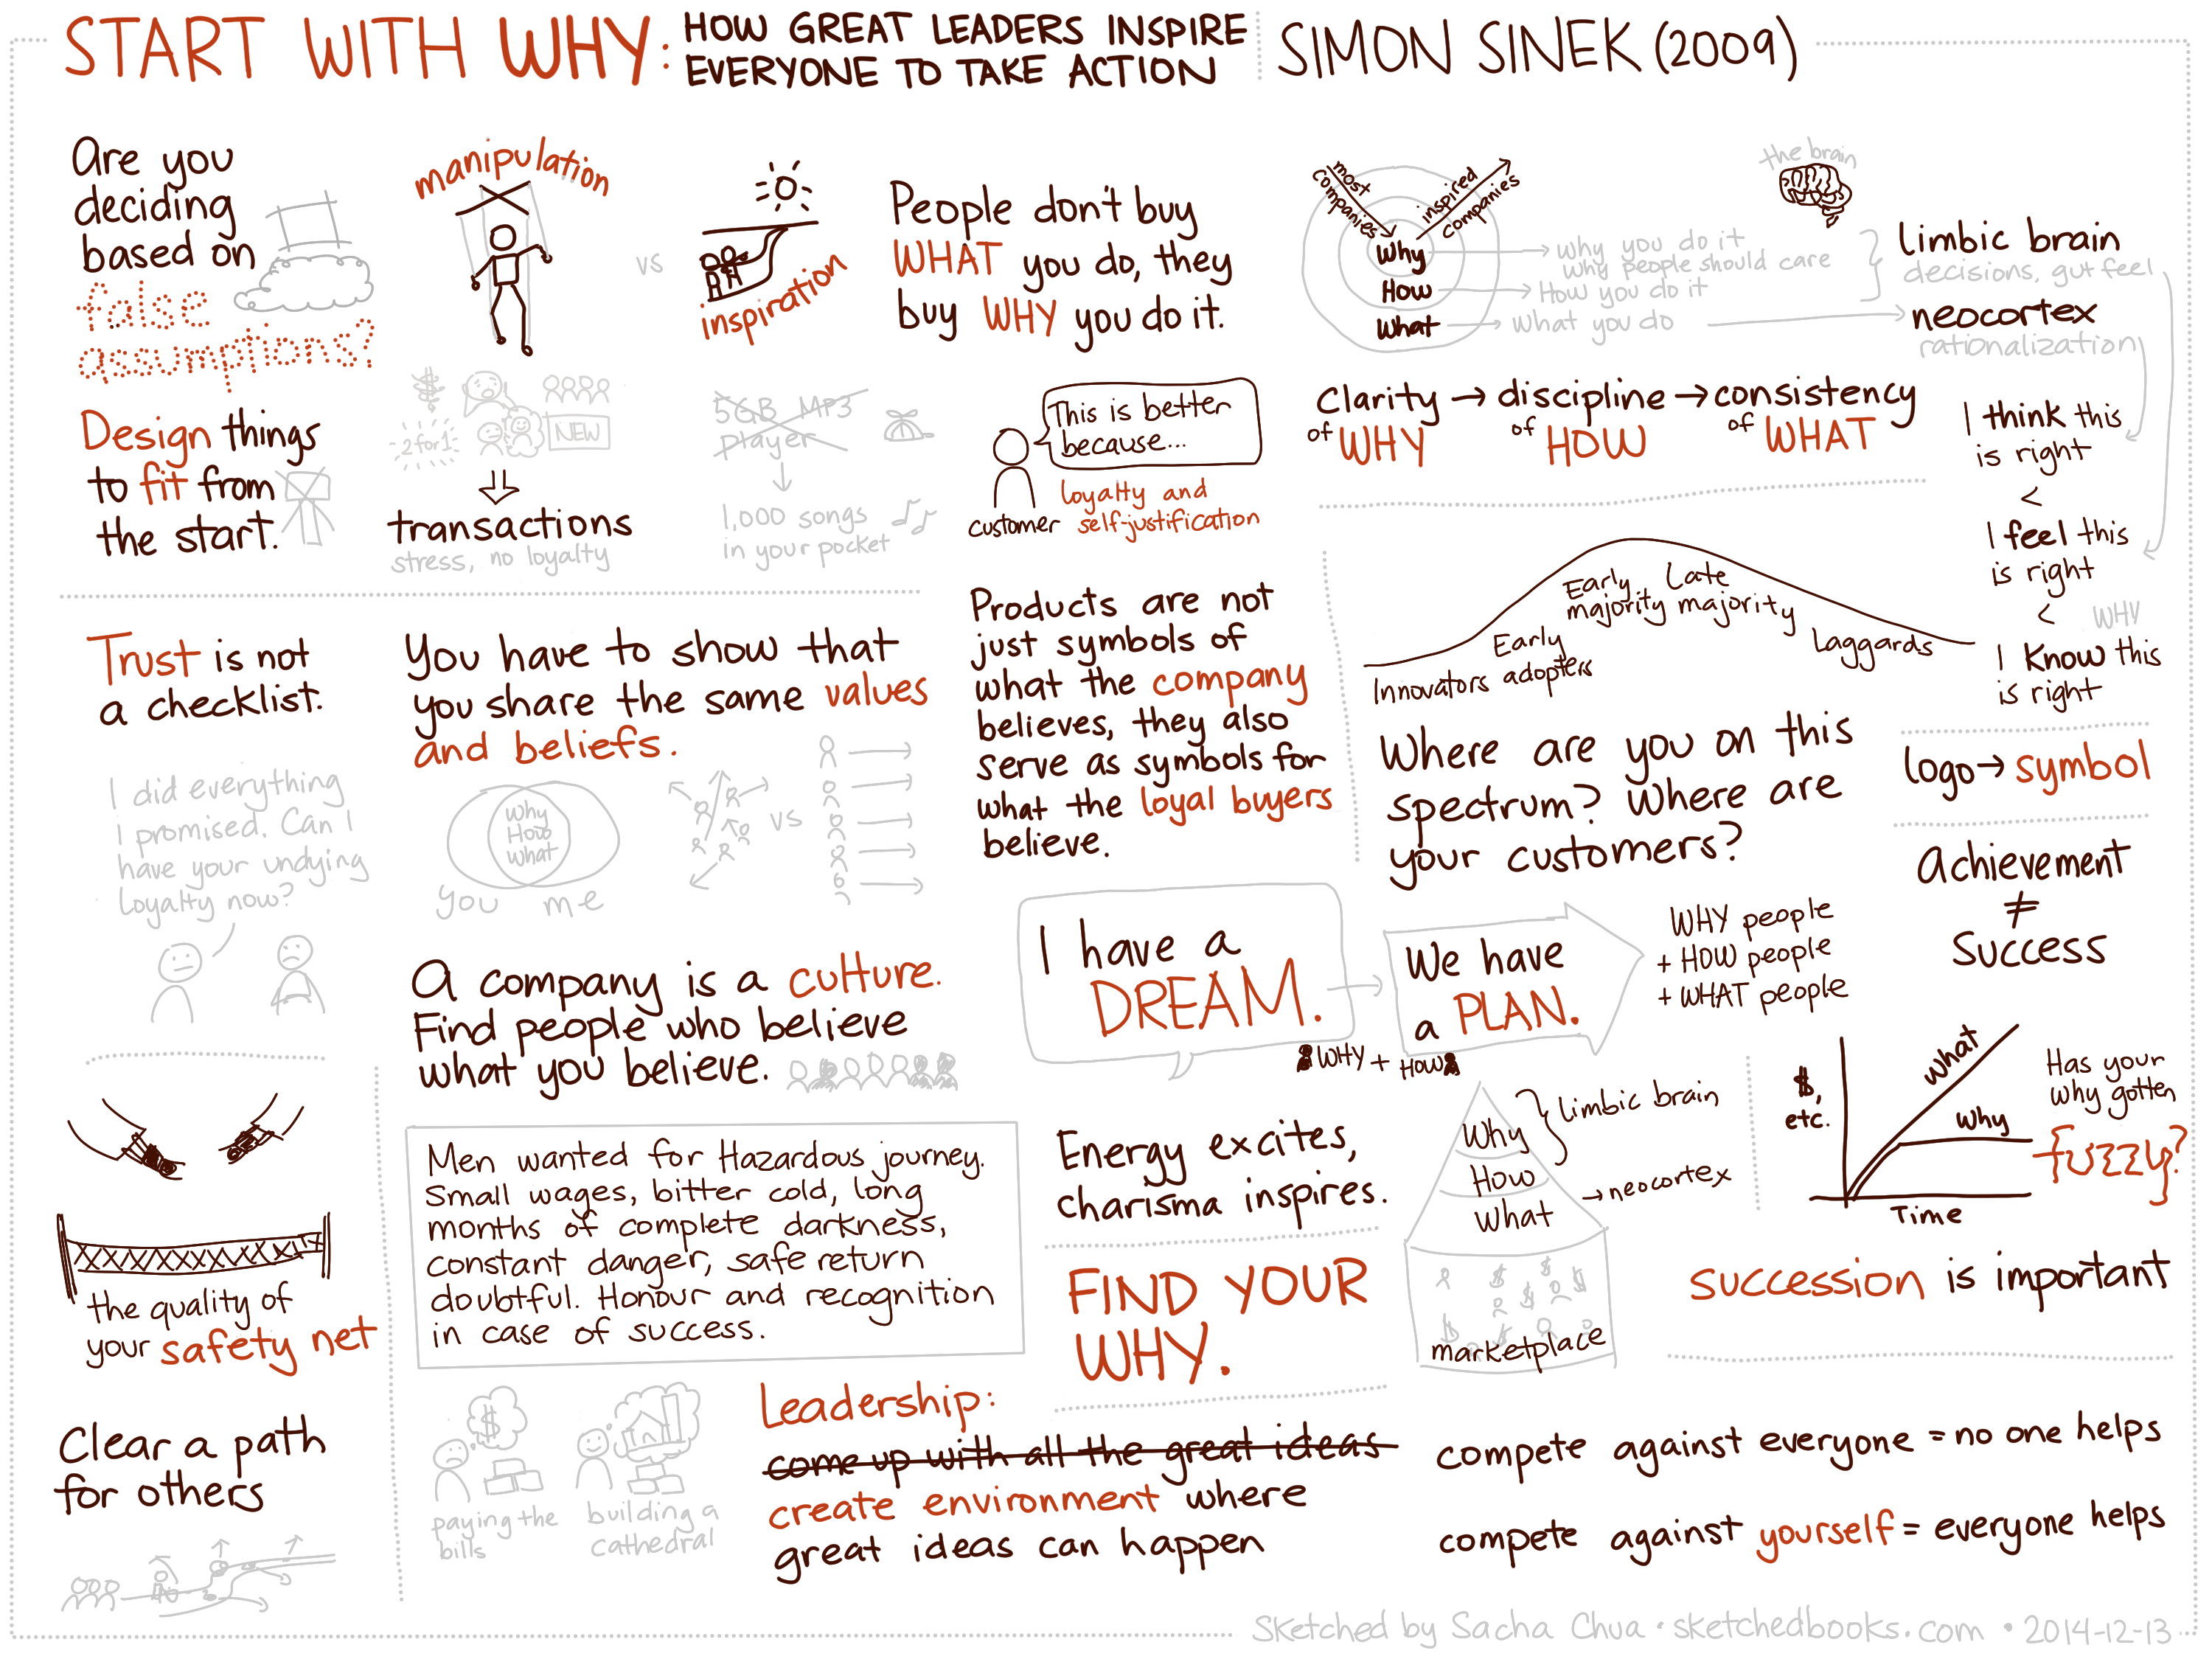 Sketched Book Start With Why How Great Leaders Inspire